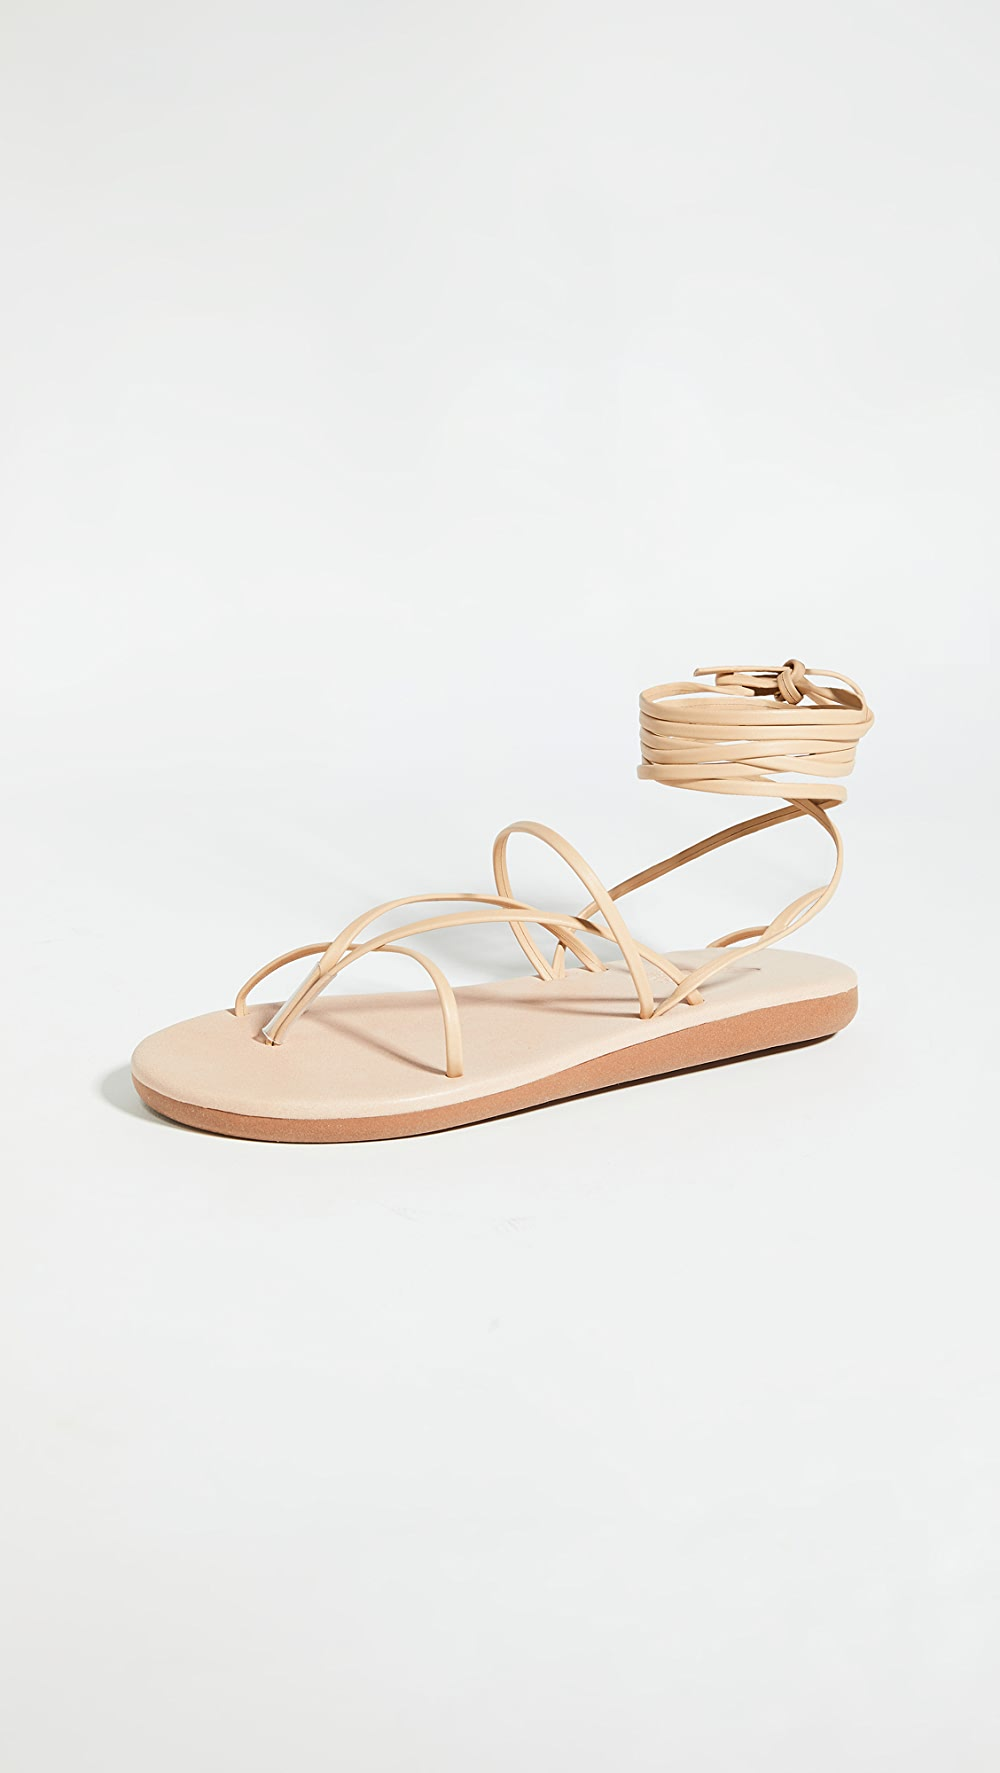 Disciplined Ancient Greek Sandals - String Flip Flops To Reduce Body Weight And Prolong Life